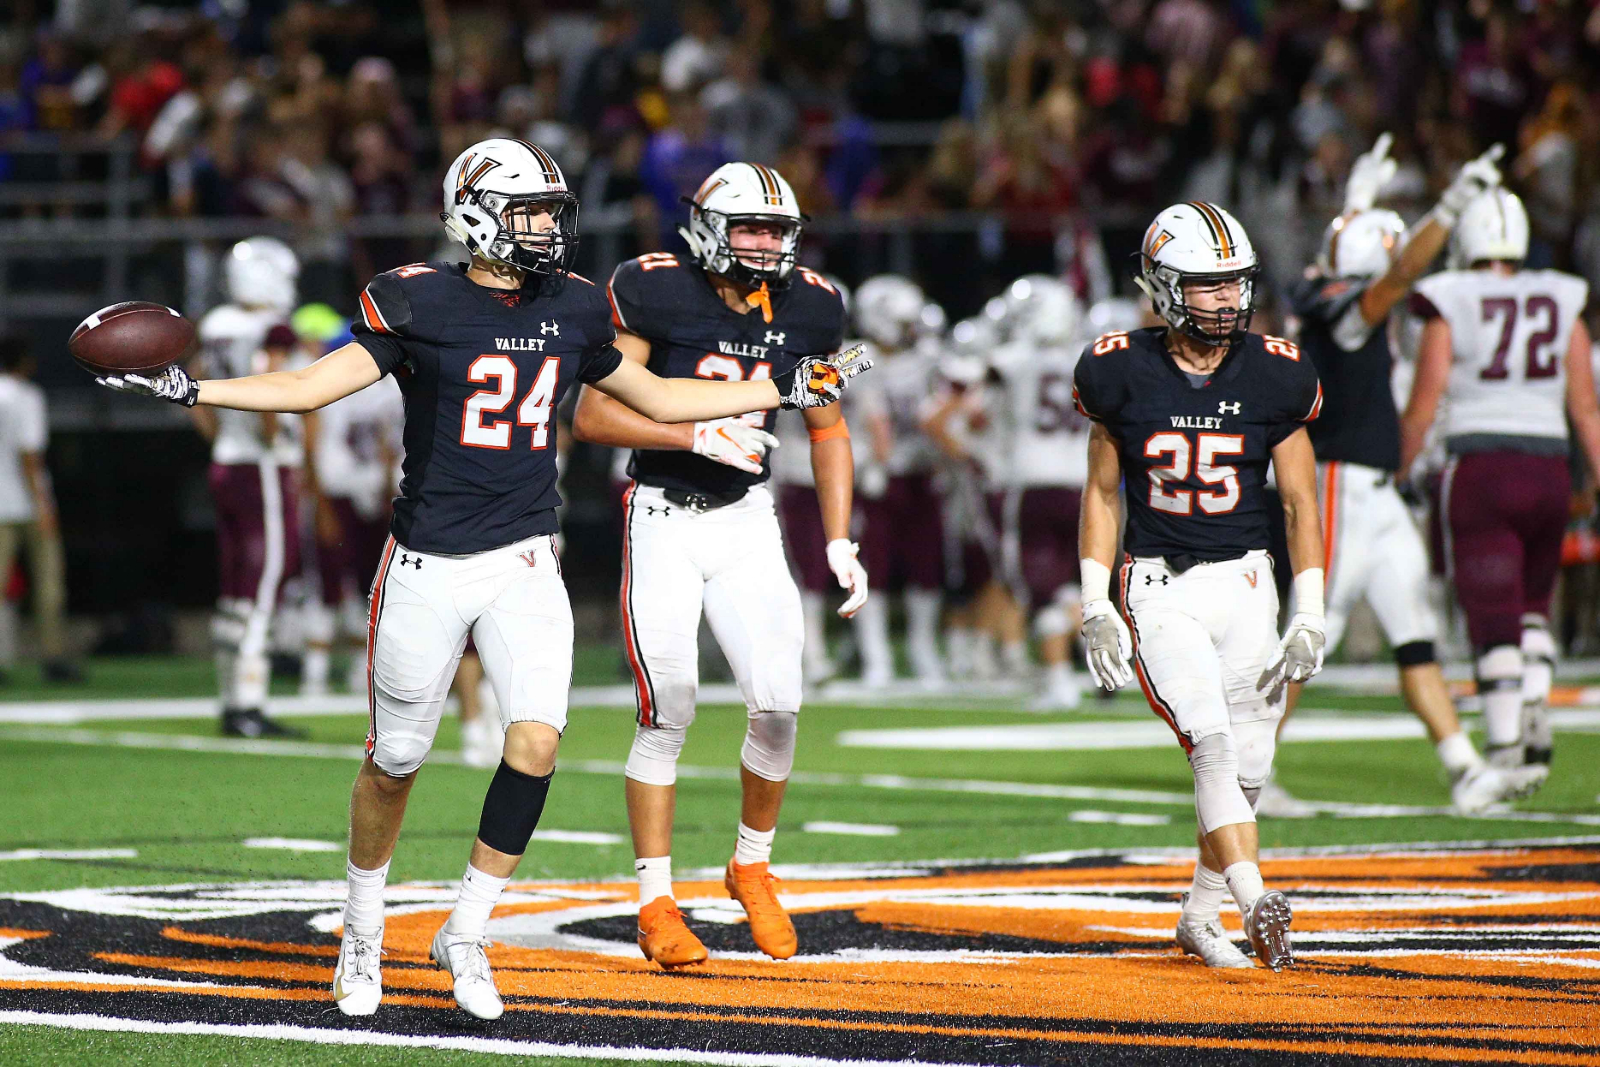 Second-Ranked Valley Beats No. 4 C.R. Kennedy